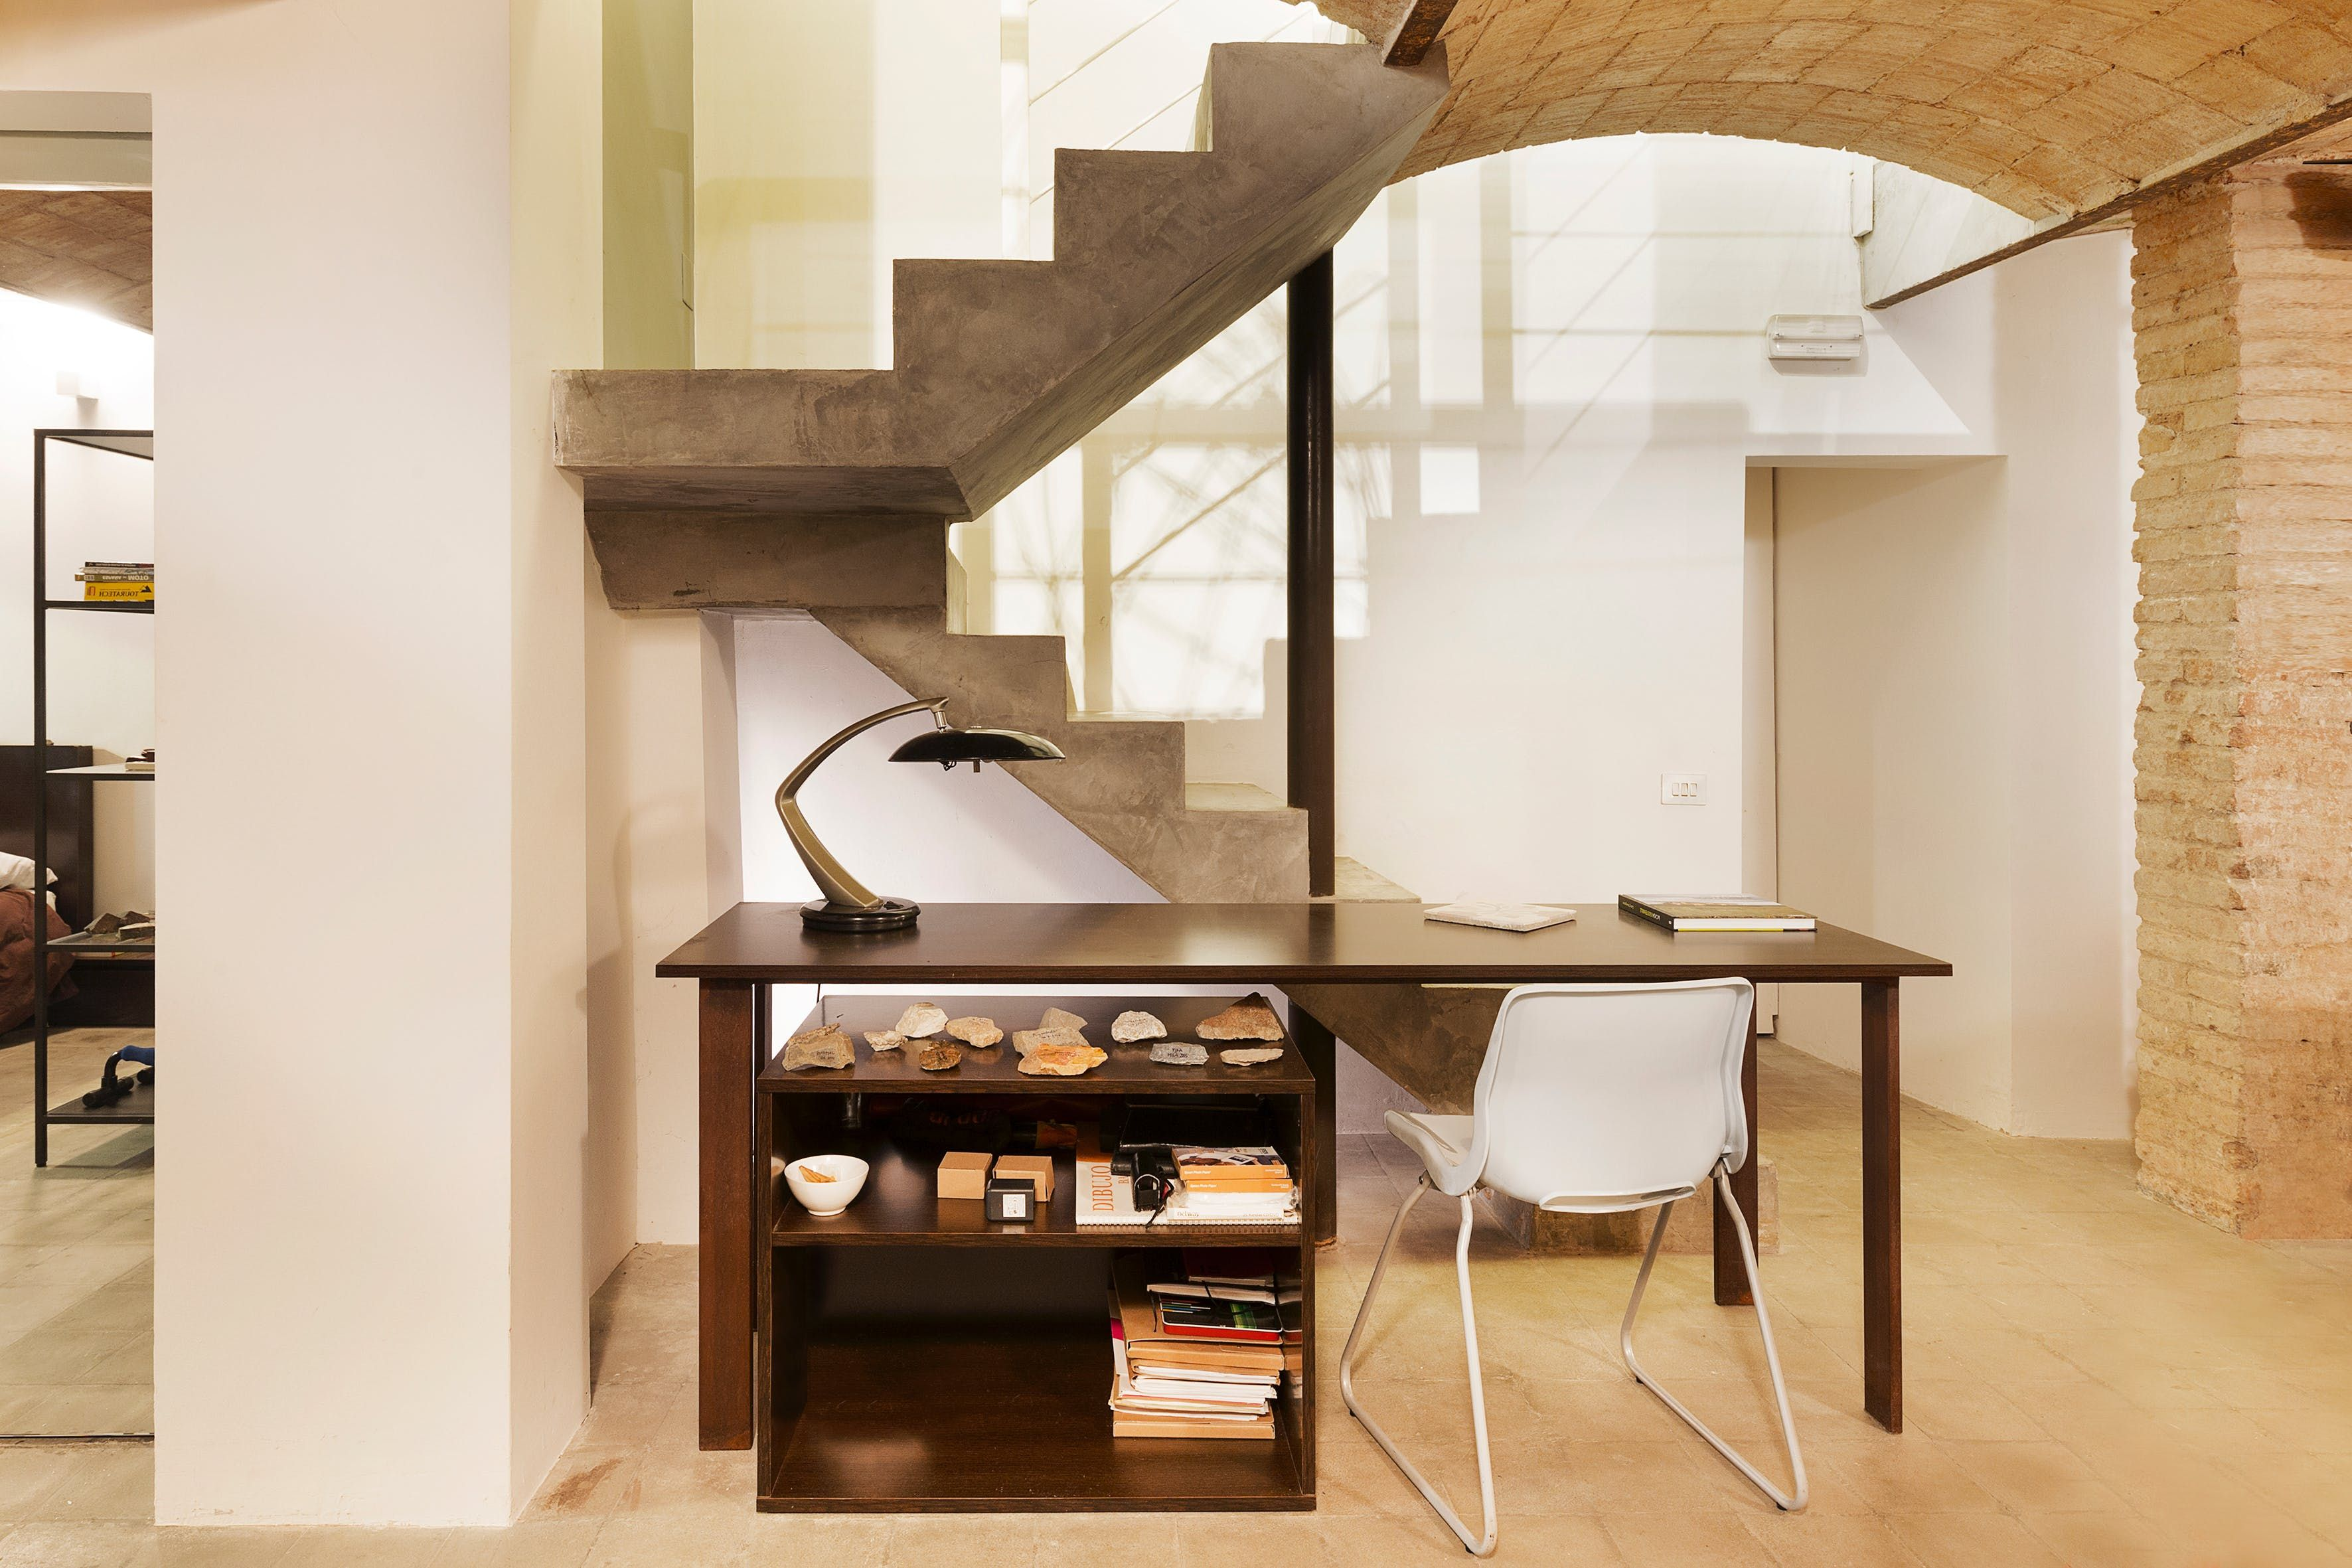 A Designer Works & Lives in This Stylish Barcelona Space